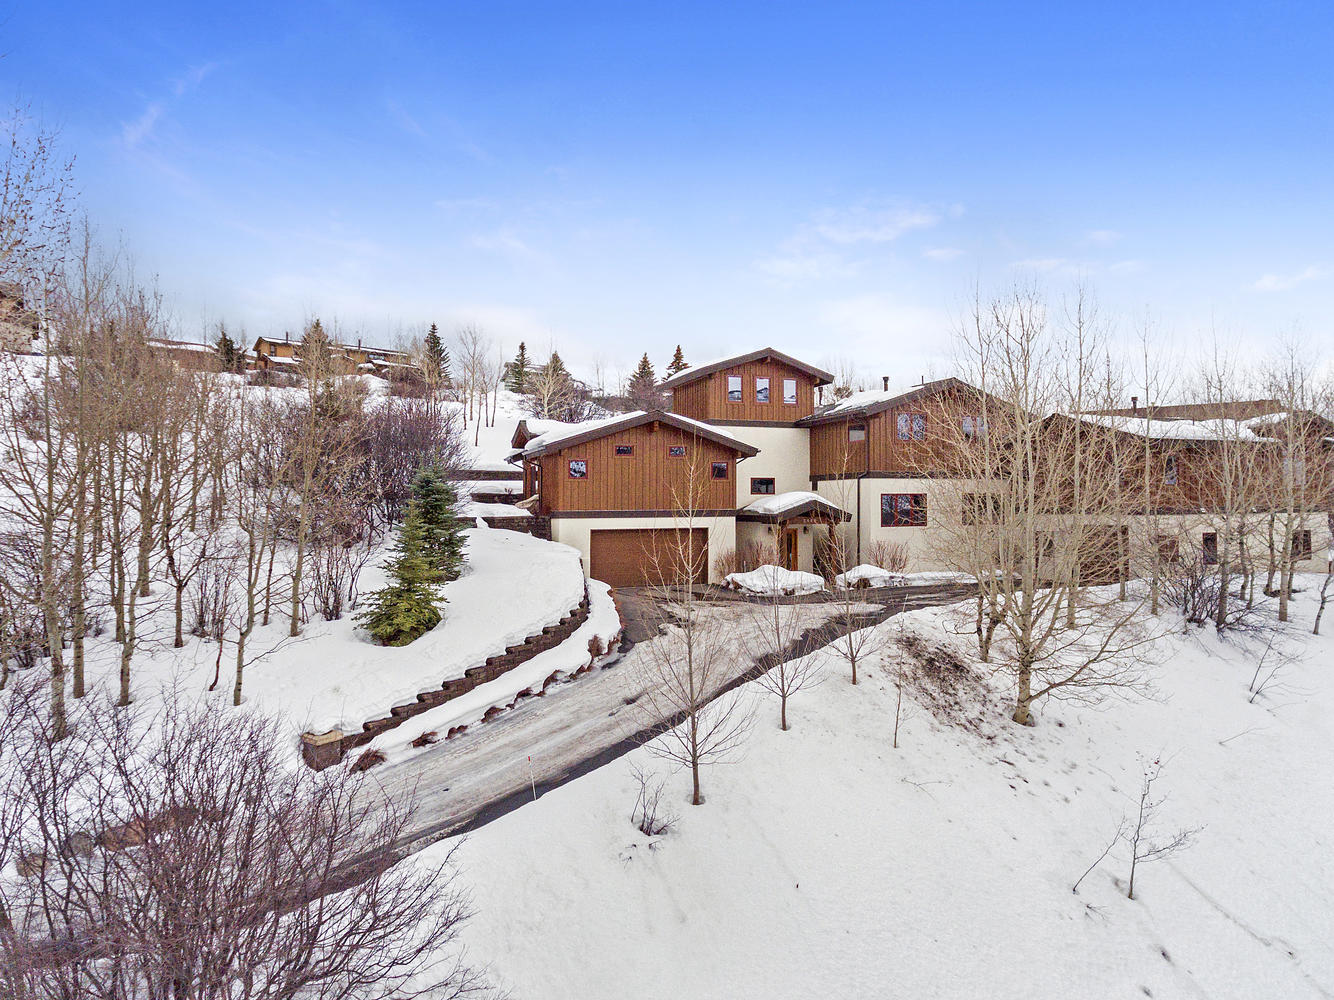 Single Family Home for Sale at Single Family Home With Lock Off 2480 Saddle Ridge Loop Wildridge, Avon, Colorado, 81620 United States